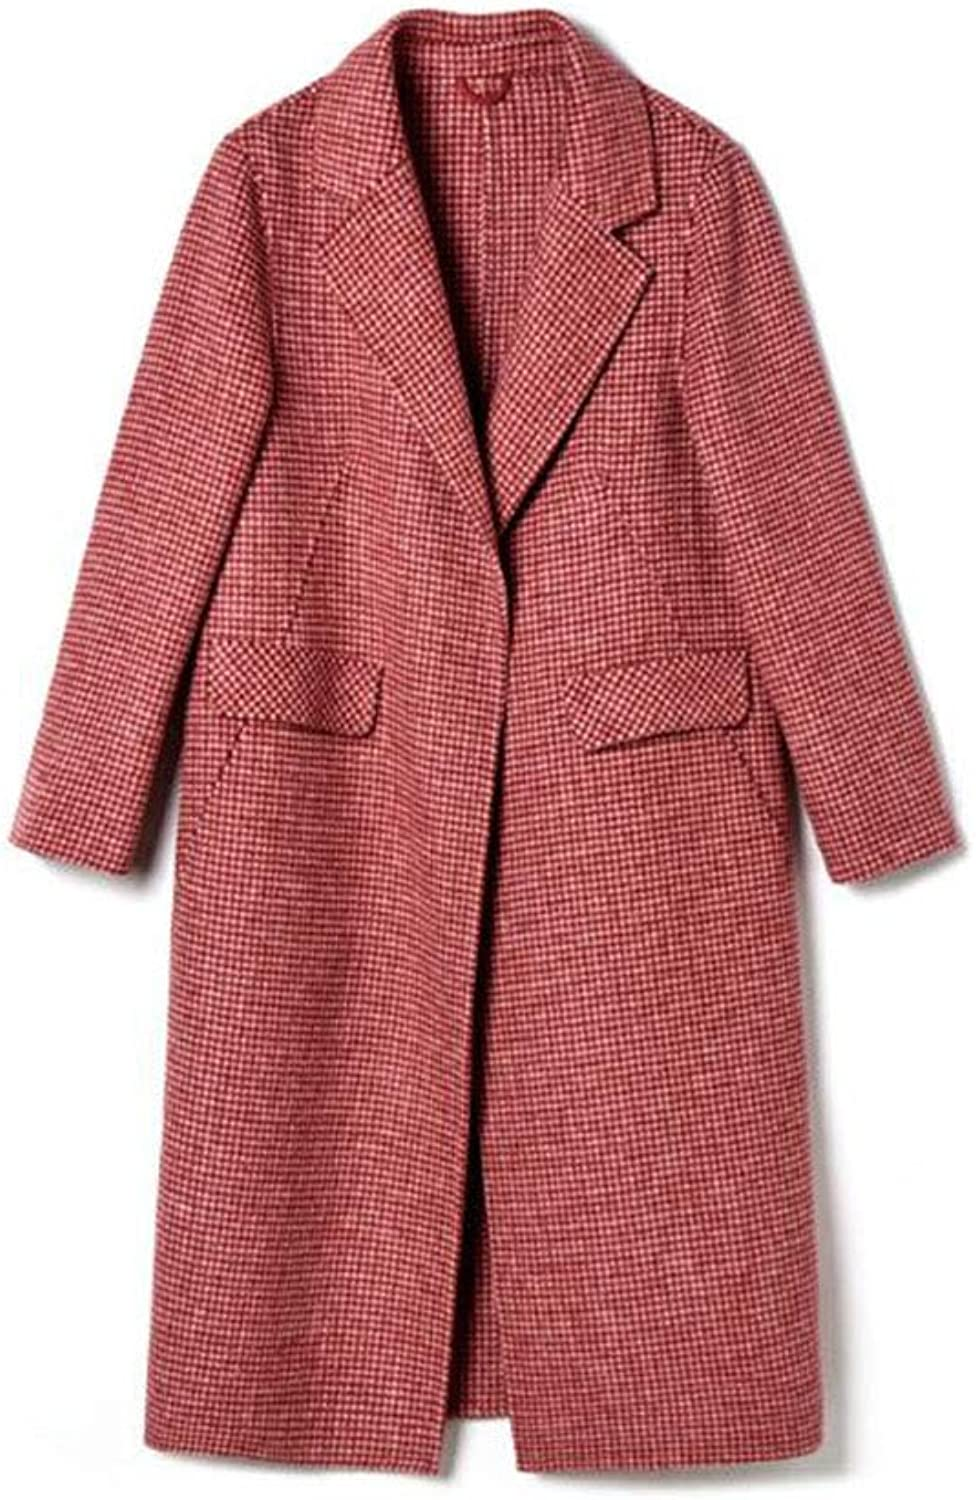 Cashmere Coat Women's Autumn and Winter wear highend Slim Long Wool Coat